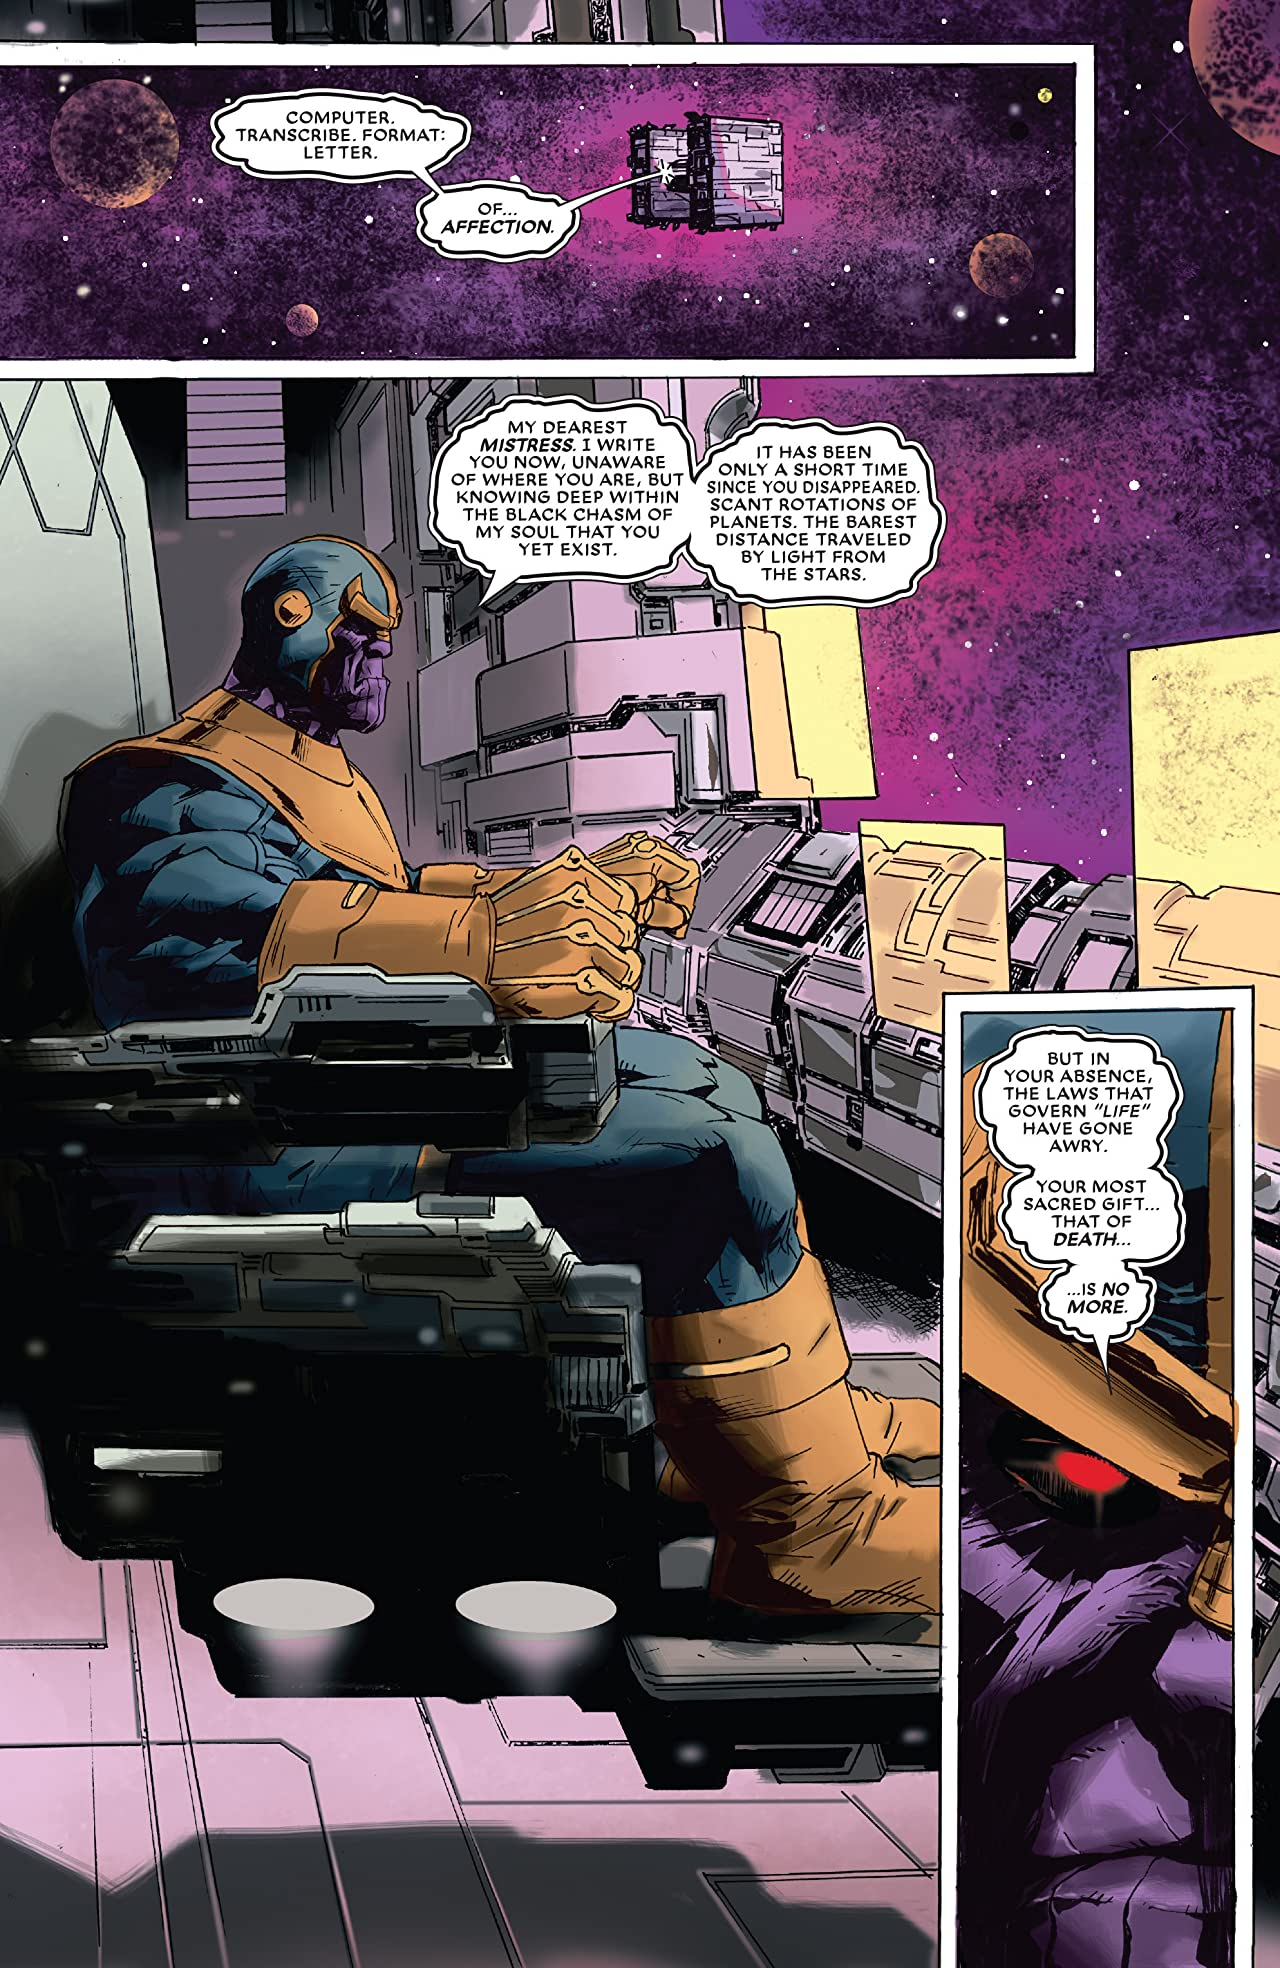 Deadpool vs. Thanos (2015) #2 (of 4)